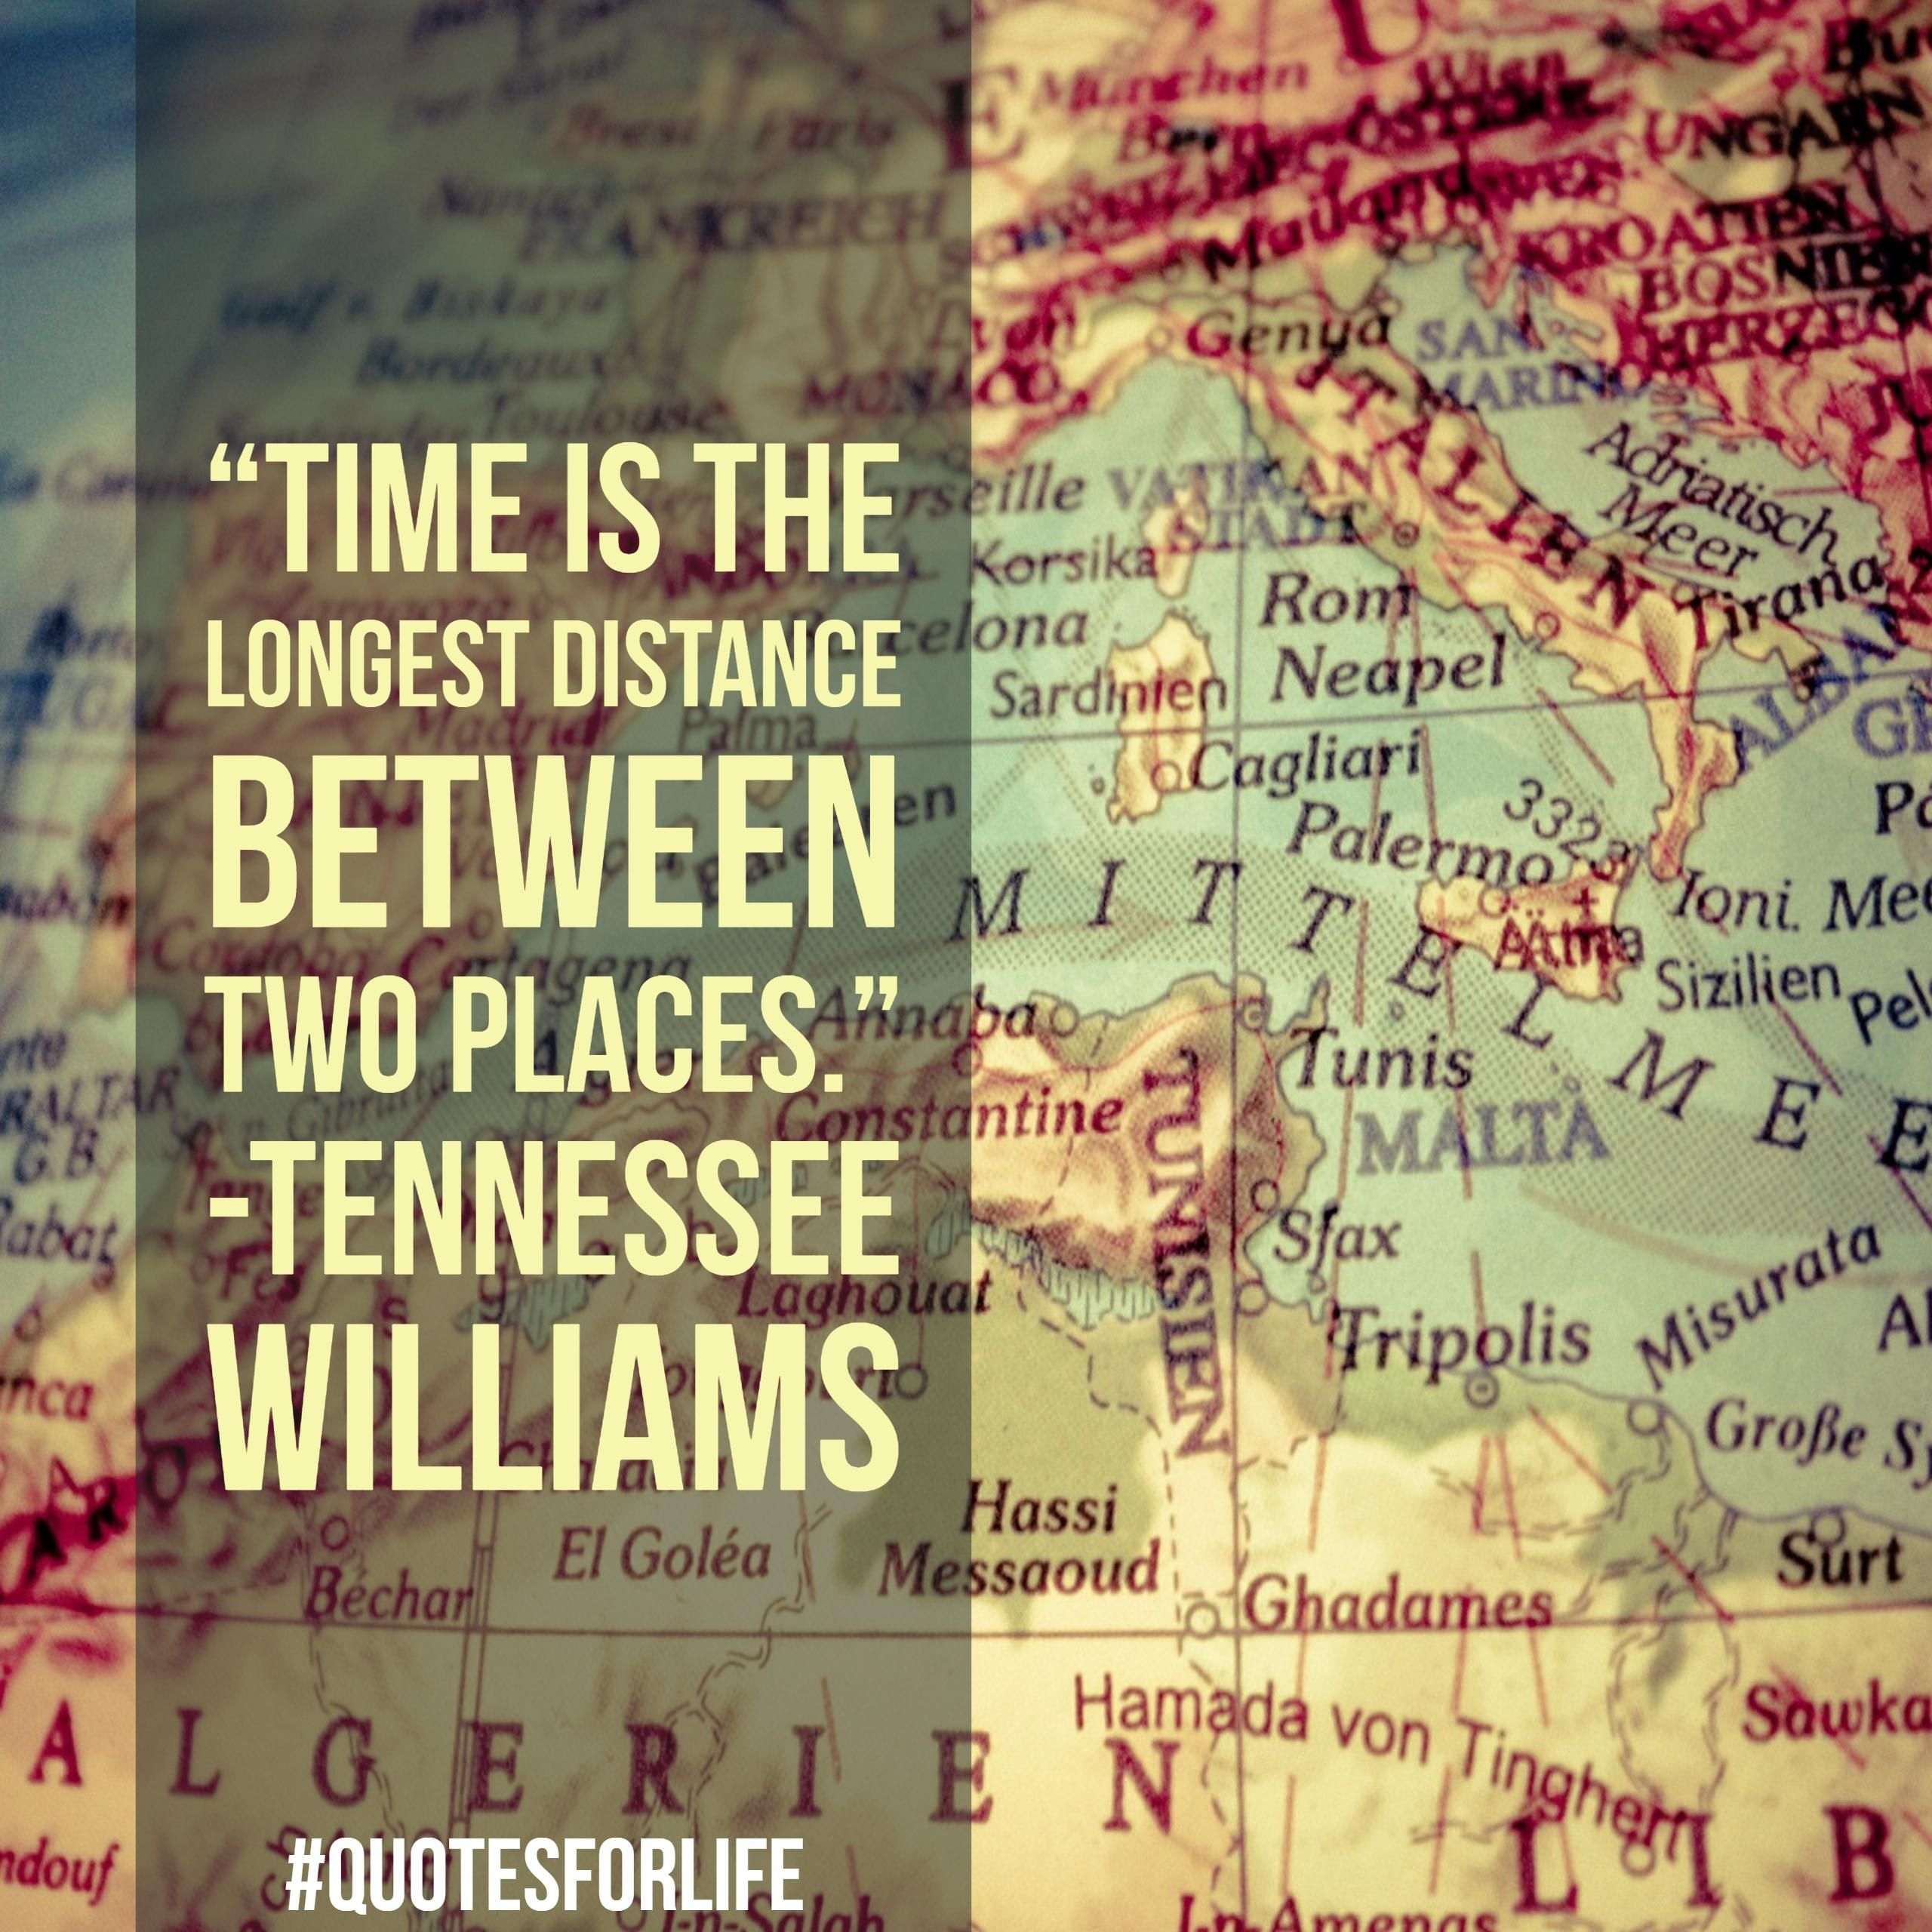 Where online can I find the distance between two cities?